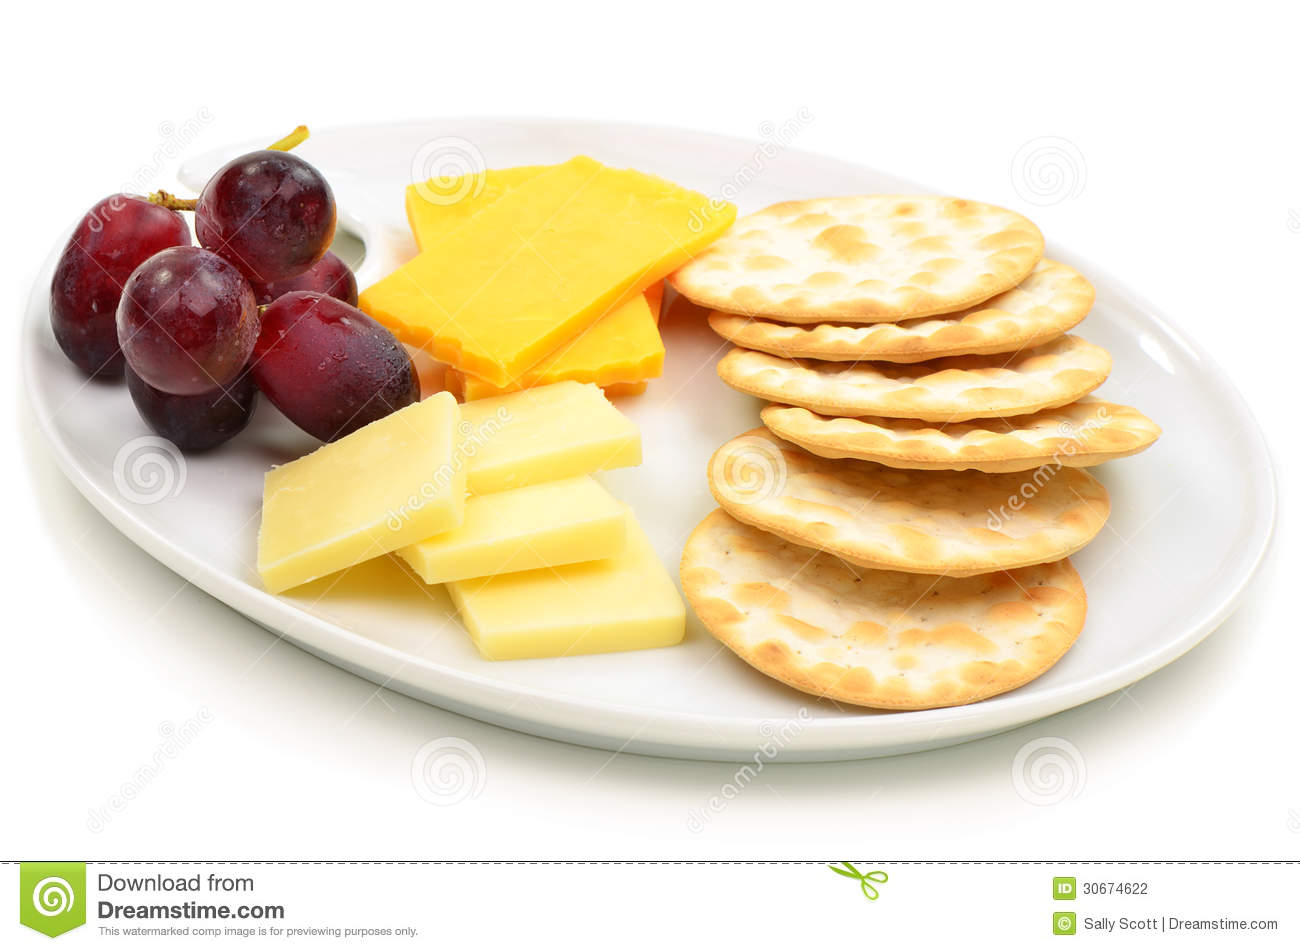 Cheese and crackers stock photo. Image of white, plate.